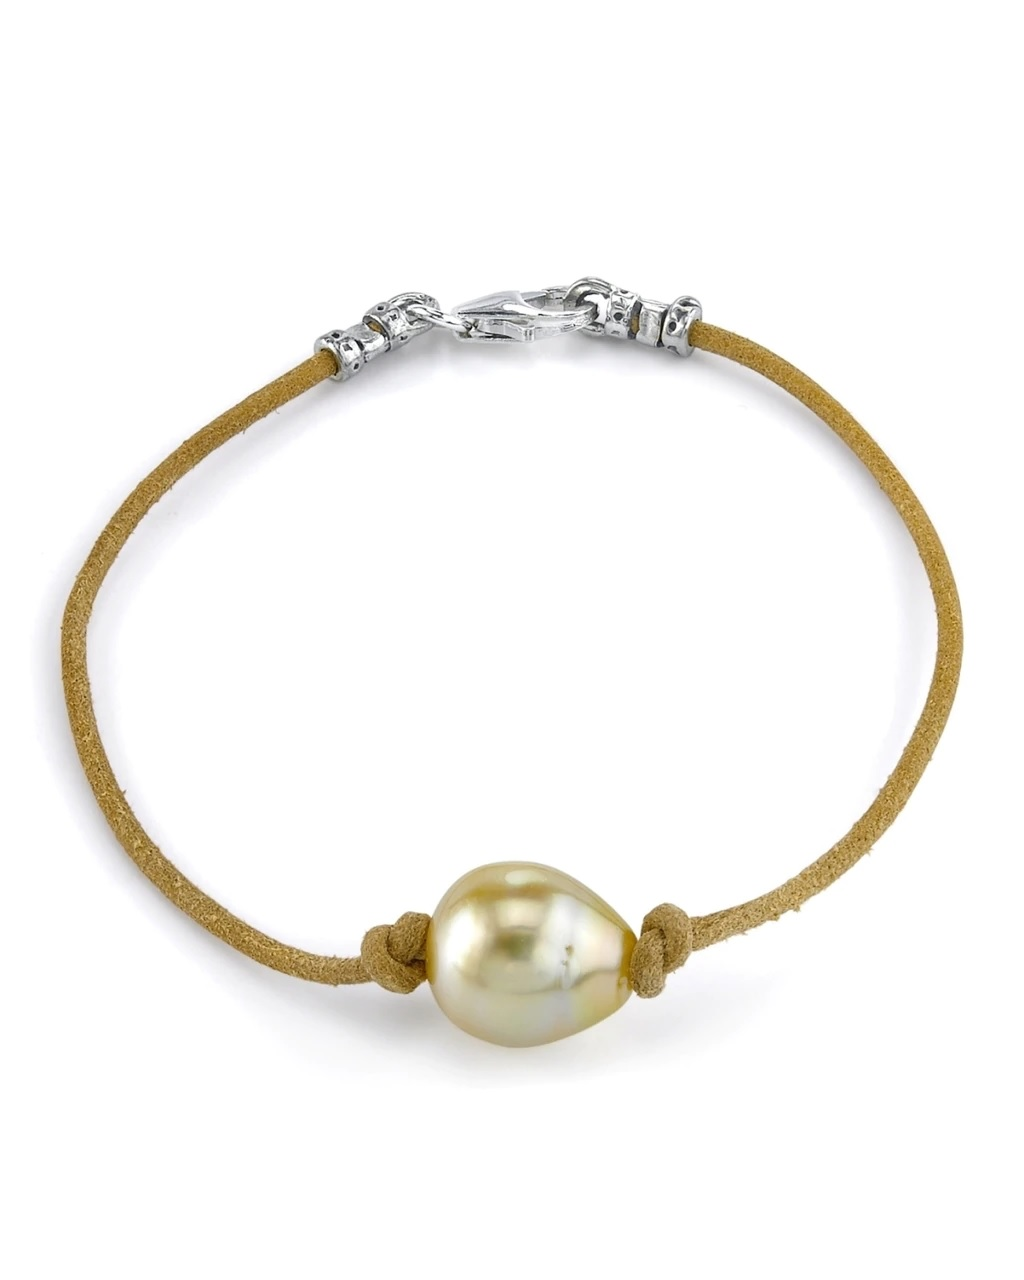 This beautiful bracelet features a baroque shaped Golden South Sea pearl